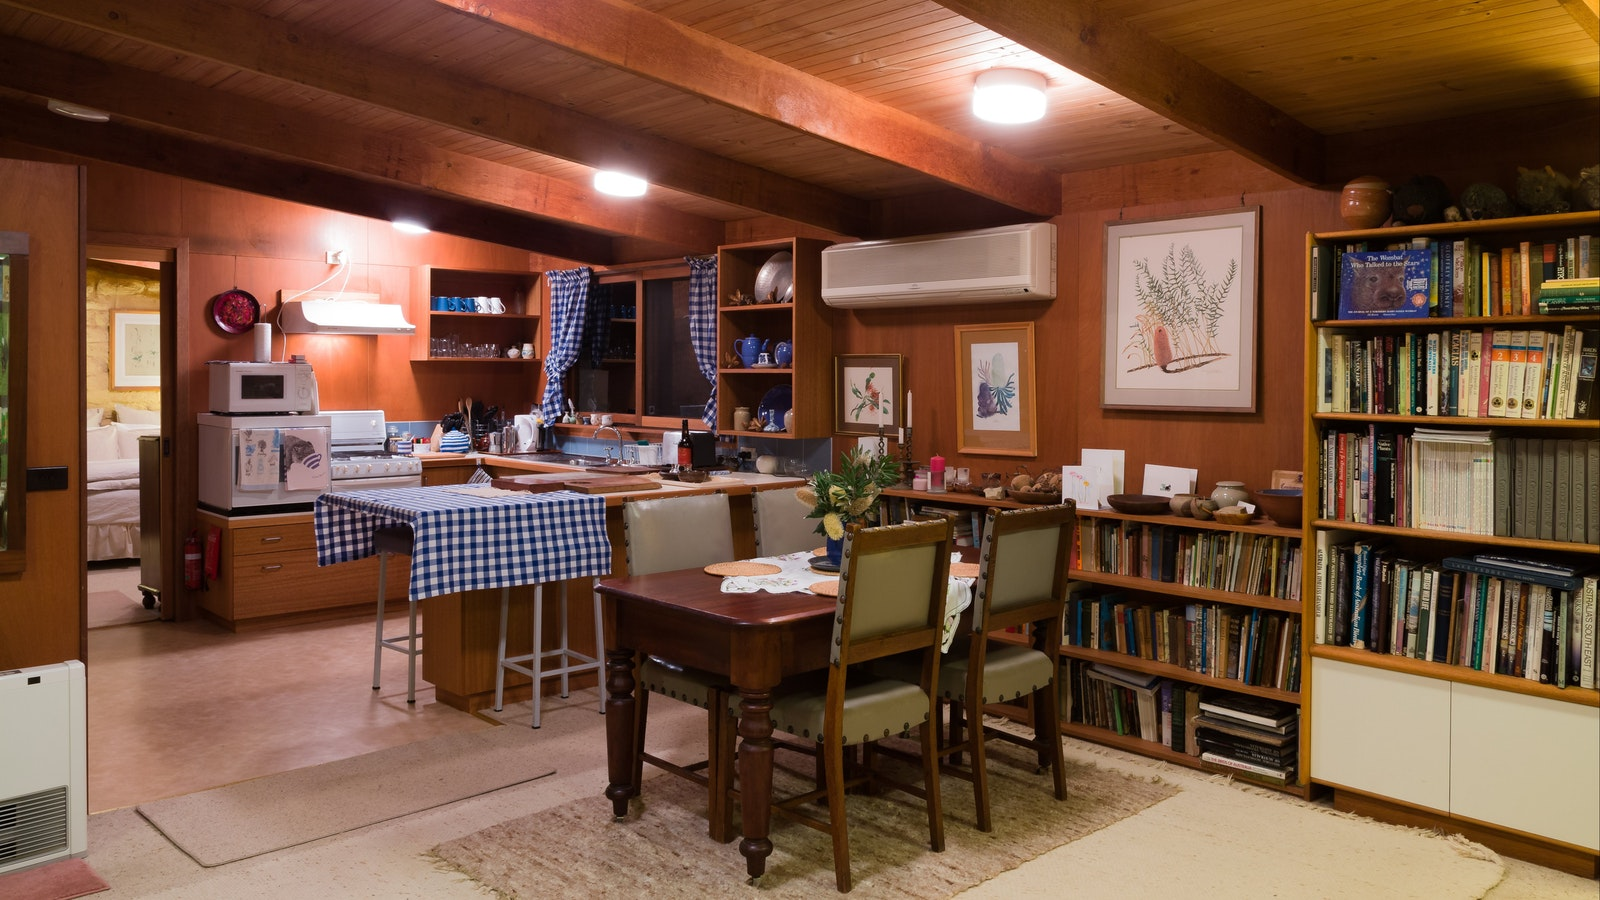 Country kitchen and dining area